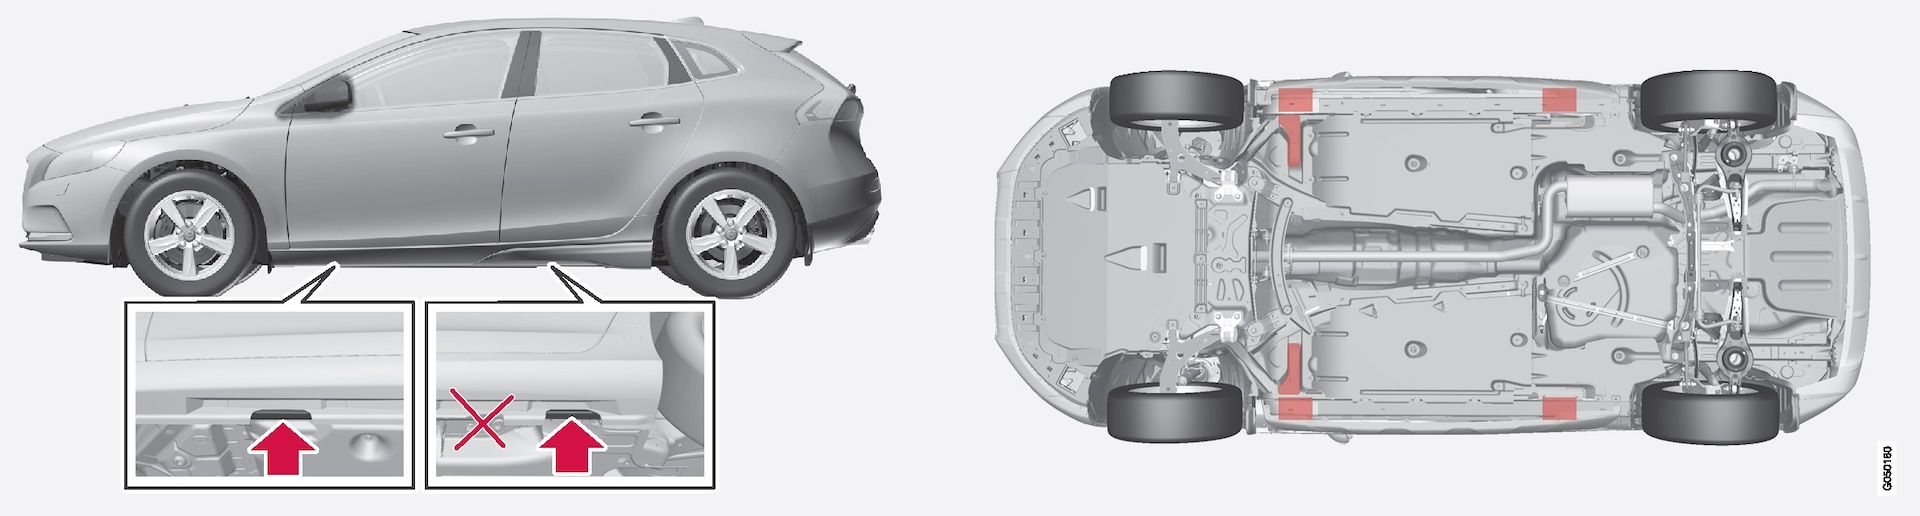 Jacking points (arrows) for the jack that belongs to the car and lifting points (marked in red).